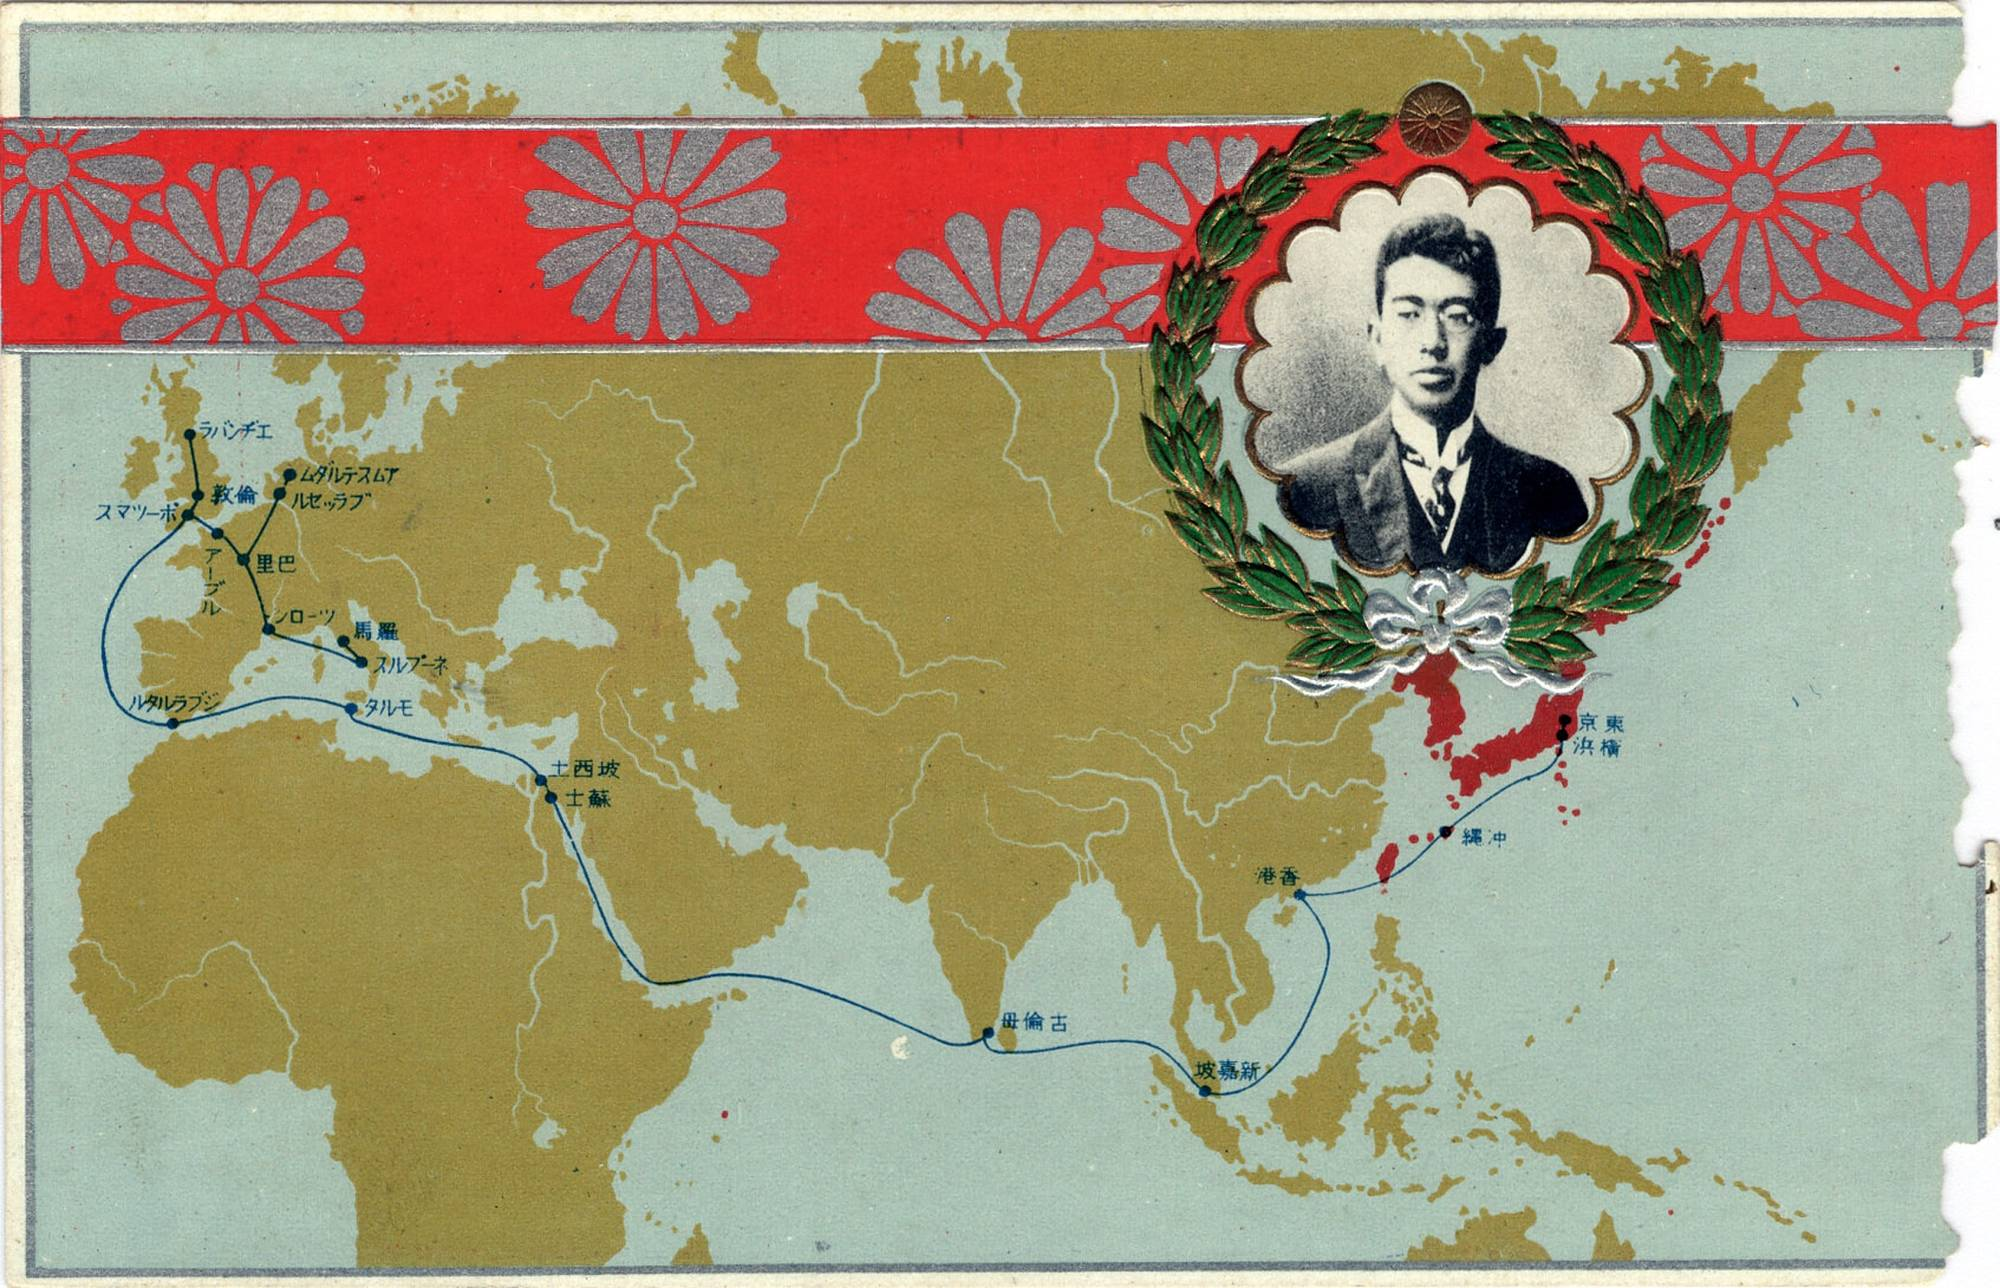 , Hirohito in Europe: 100 years on, historic imperial trip celebrated for its vision of peace, Indian & World Live Breaking News Coverage And Updates